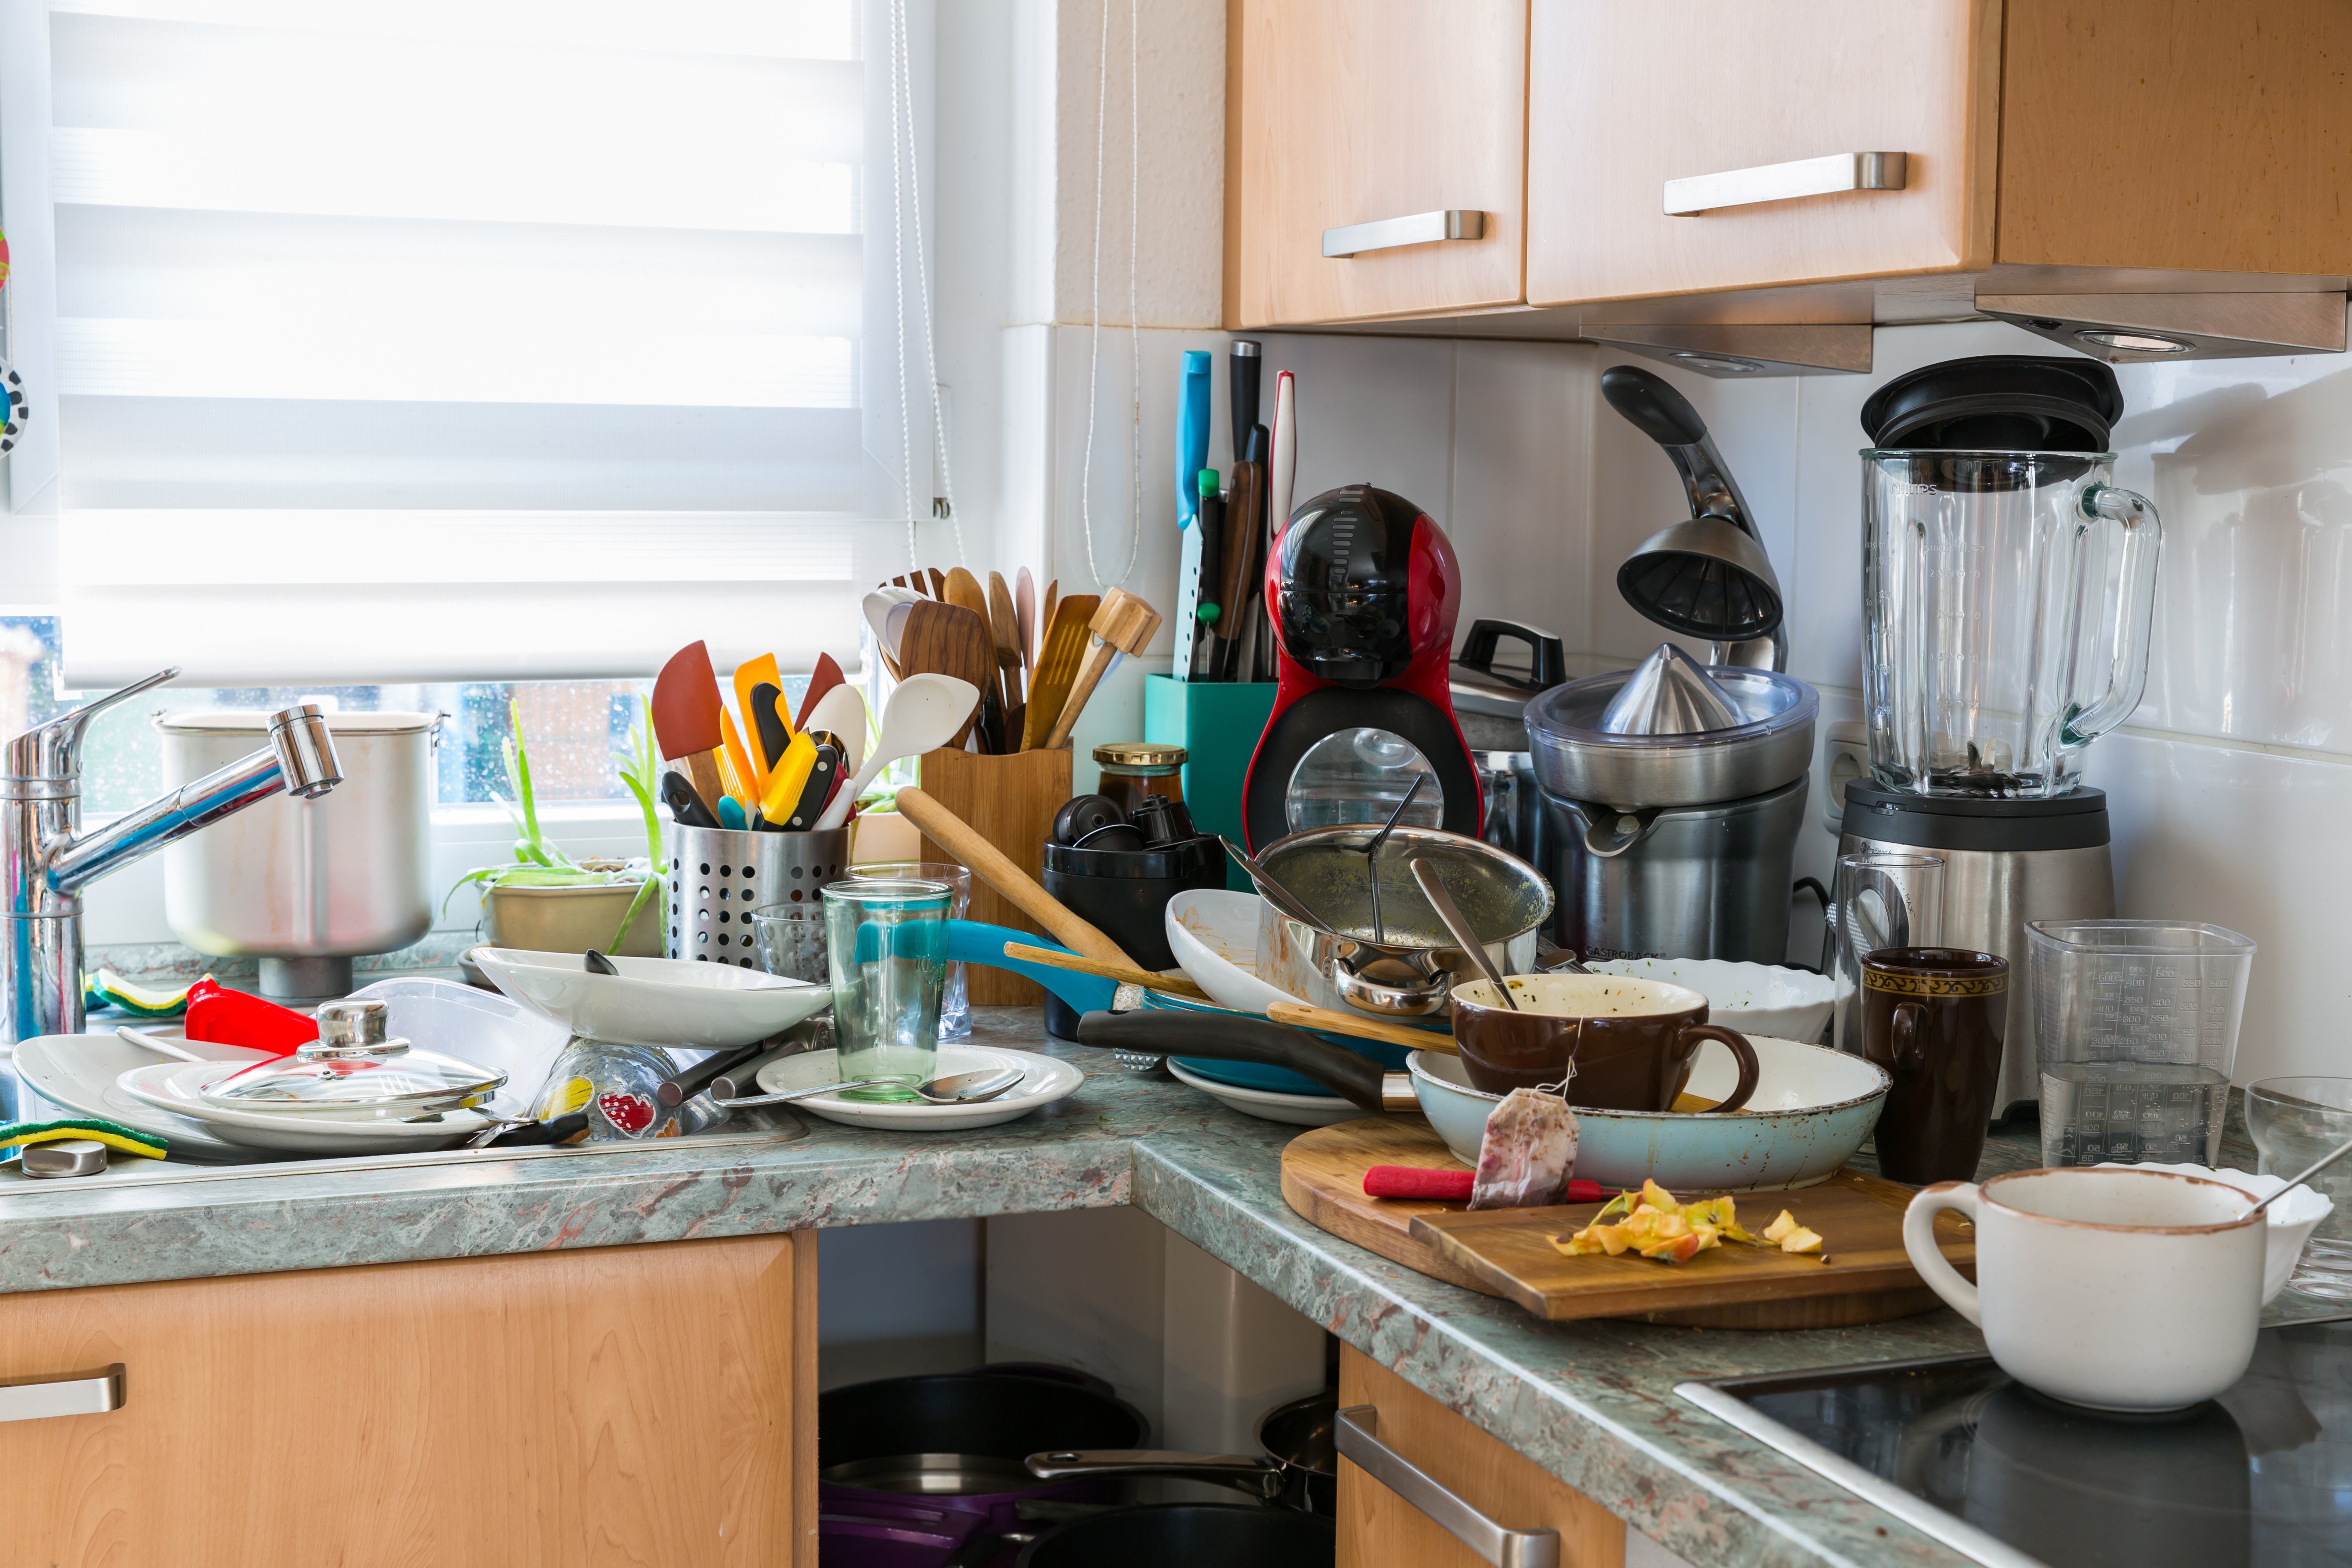 blog image of messy kitchen; Organize Your Apartment Kitchen!